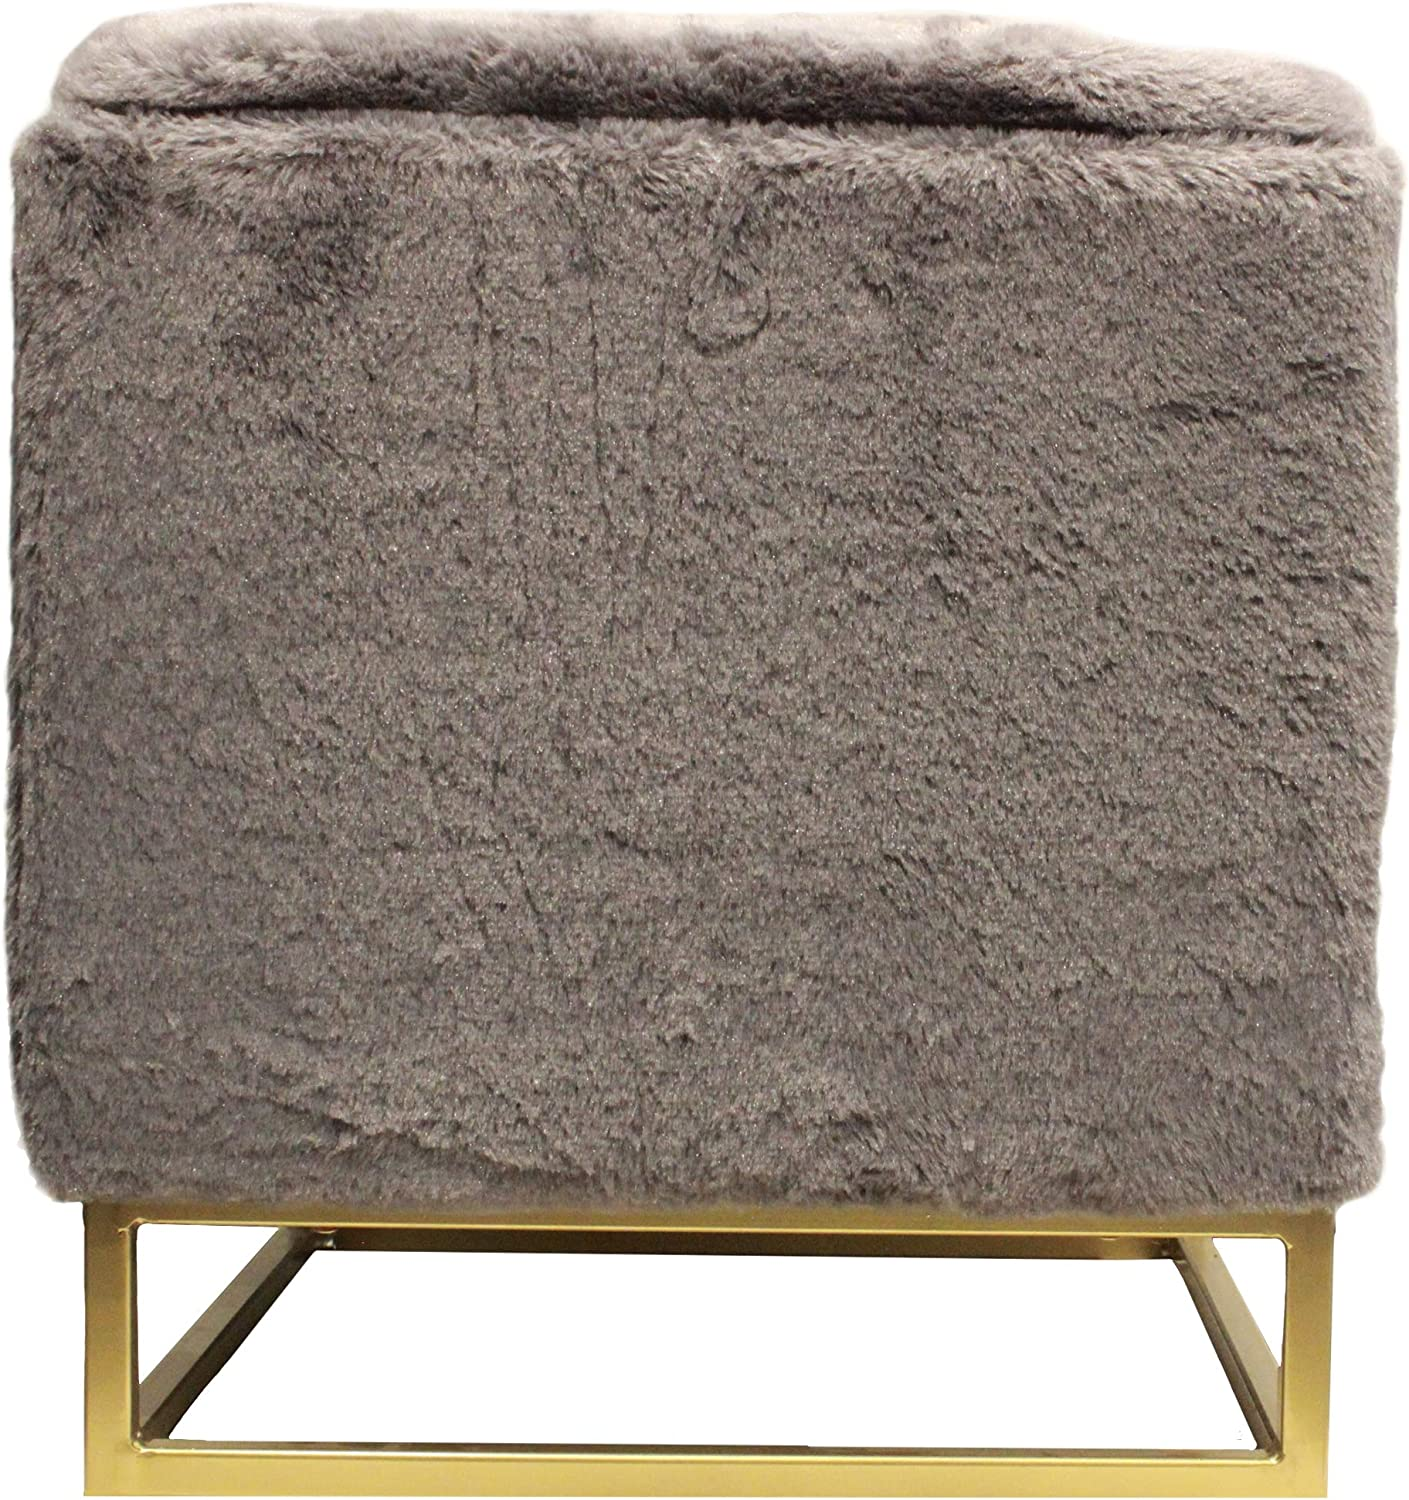 Design Guild Fur Legs Ottoman Beautiful Square Footrest w/Soft, Plush Cover, Thick Padded Cushion, Decorative Gold Metal Plated Feet with Storage, Gray